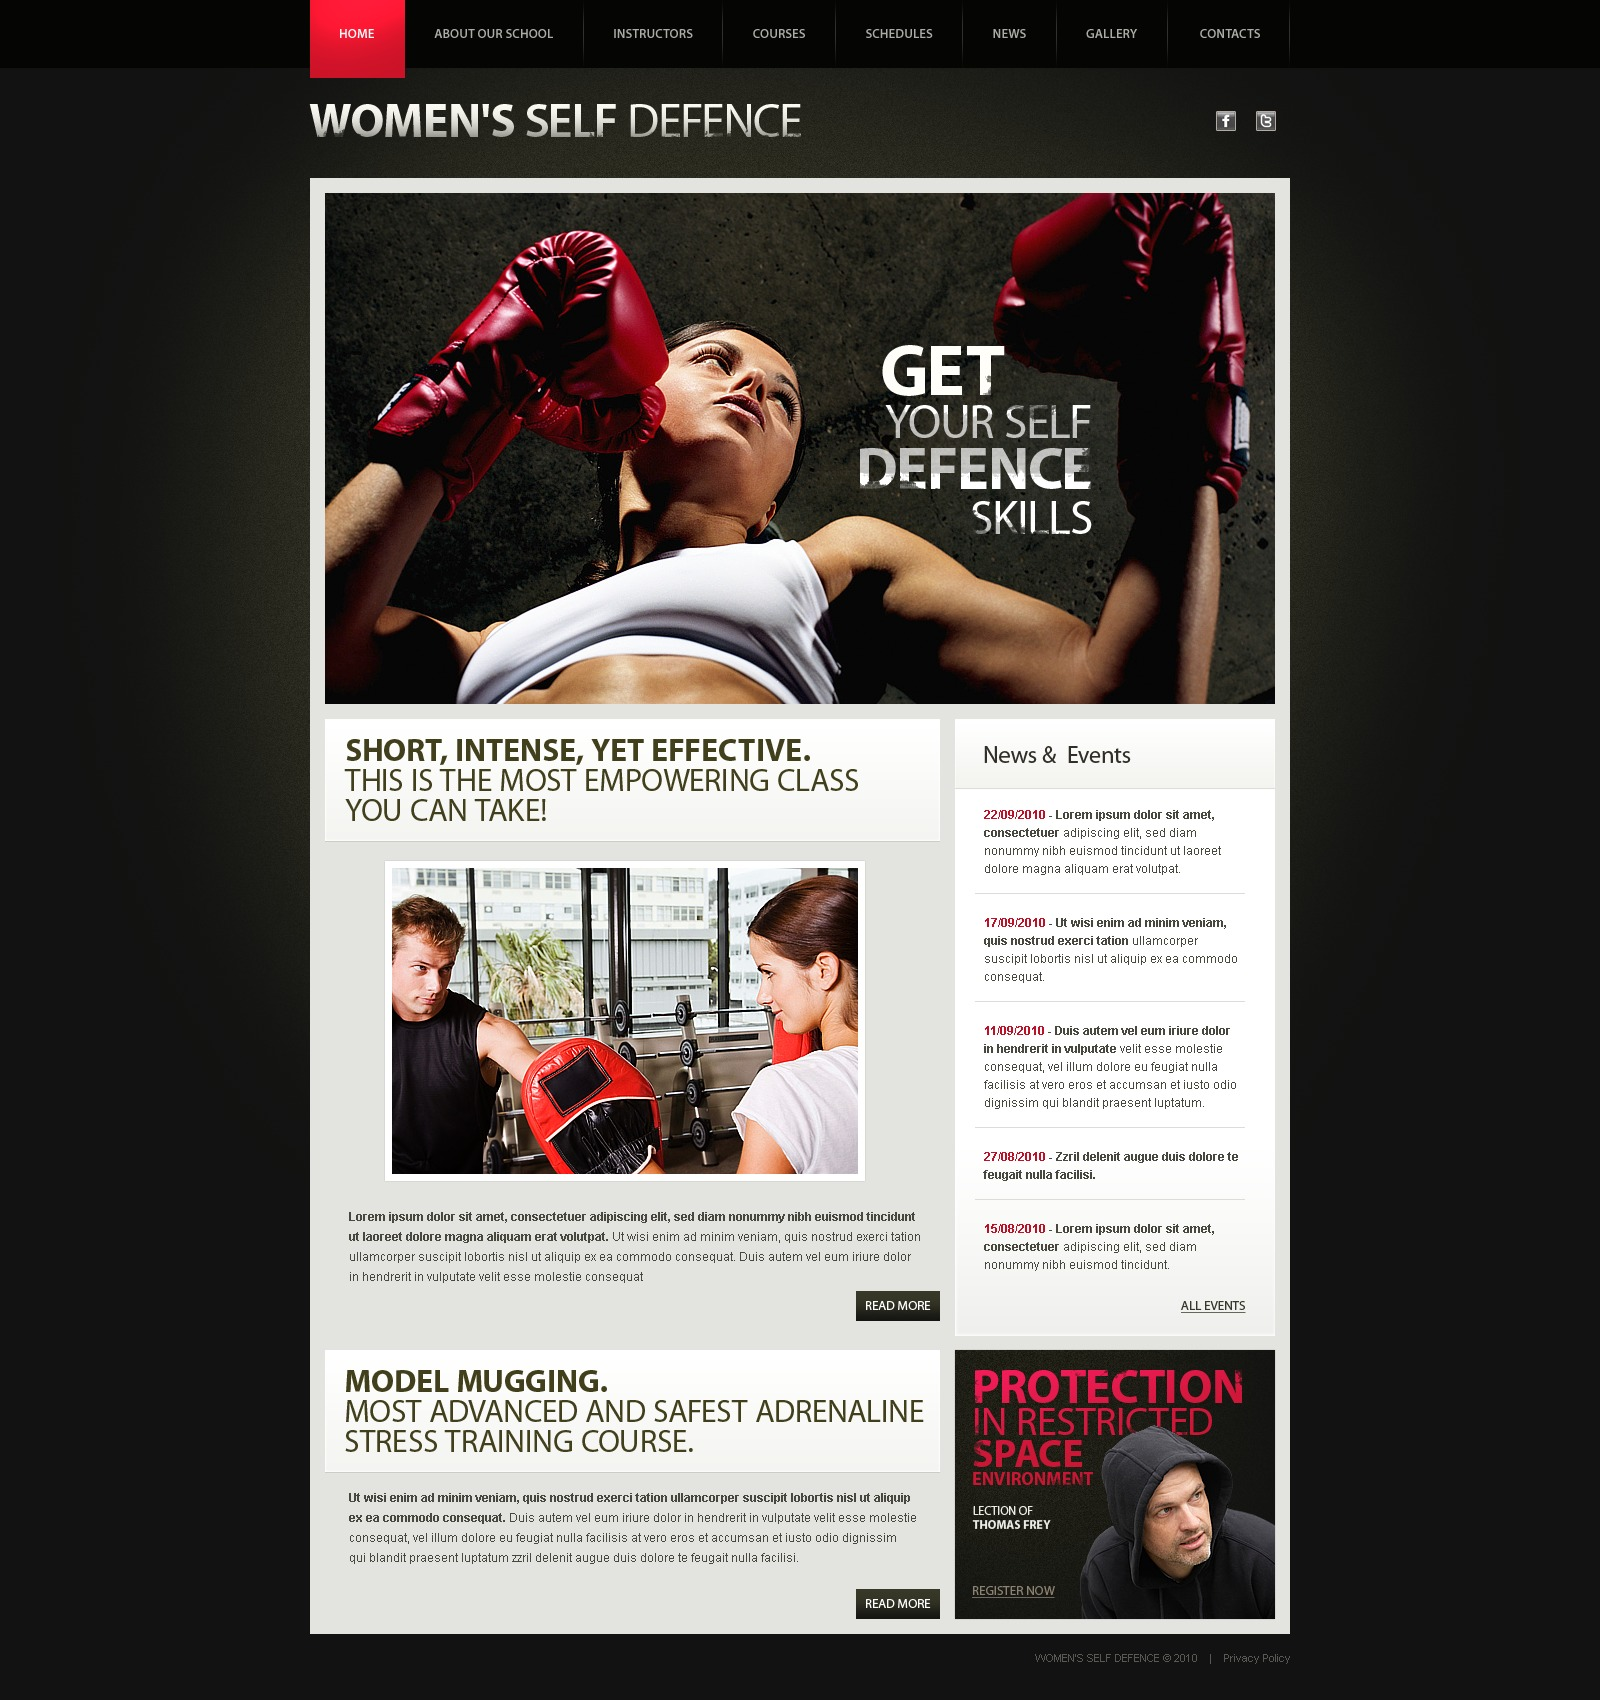 The Women Self PSD Design 54430, one of the best PSD templates of its kind (sport, flash 8, wide), also known as women self PSD template, defence PSD template, fighting PSD template, video PSD template, tickers PSD template, photos PSD template, champions PSD template, championship PSD template, sport and related with women self, defence, fighting, video, tickers, photos, champions, championship, sport, etc.